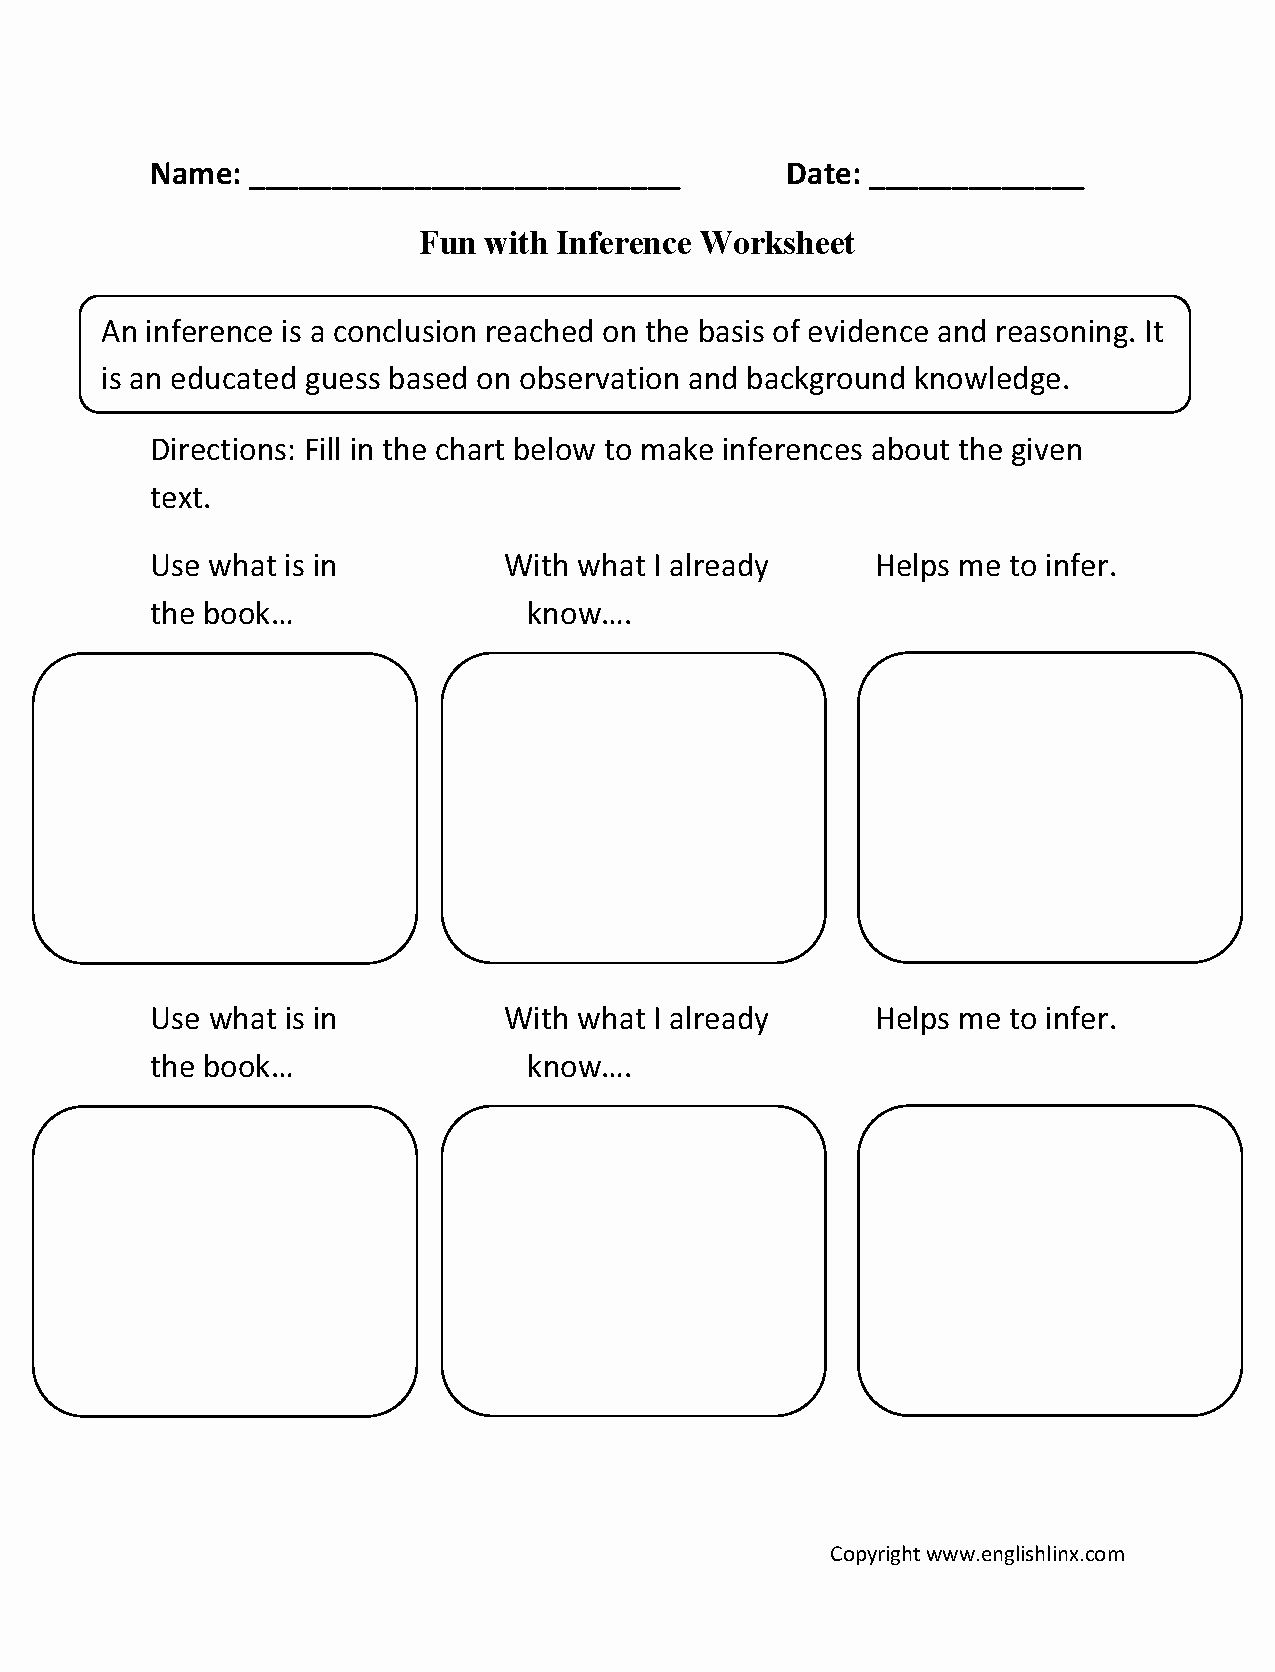 Middle School Inference Worksheets Unique Worksheet Inference Worksheets Middle School Grass Fedjp